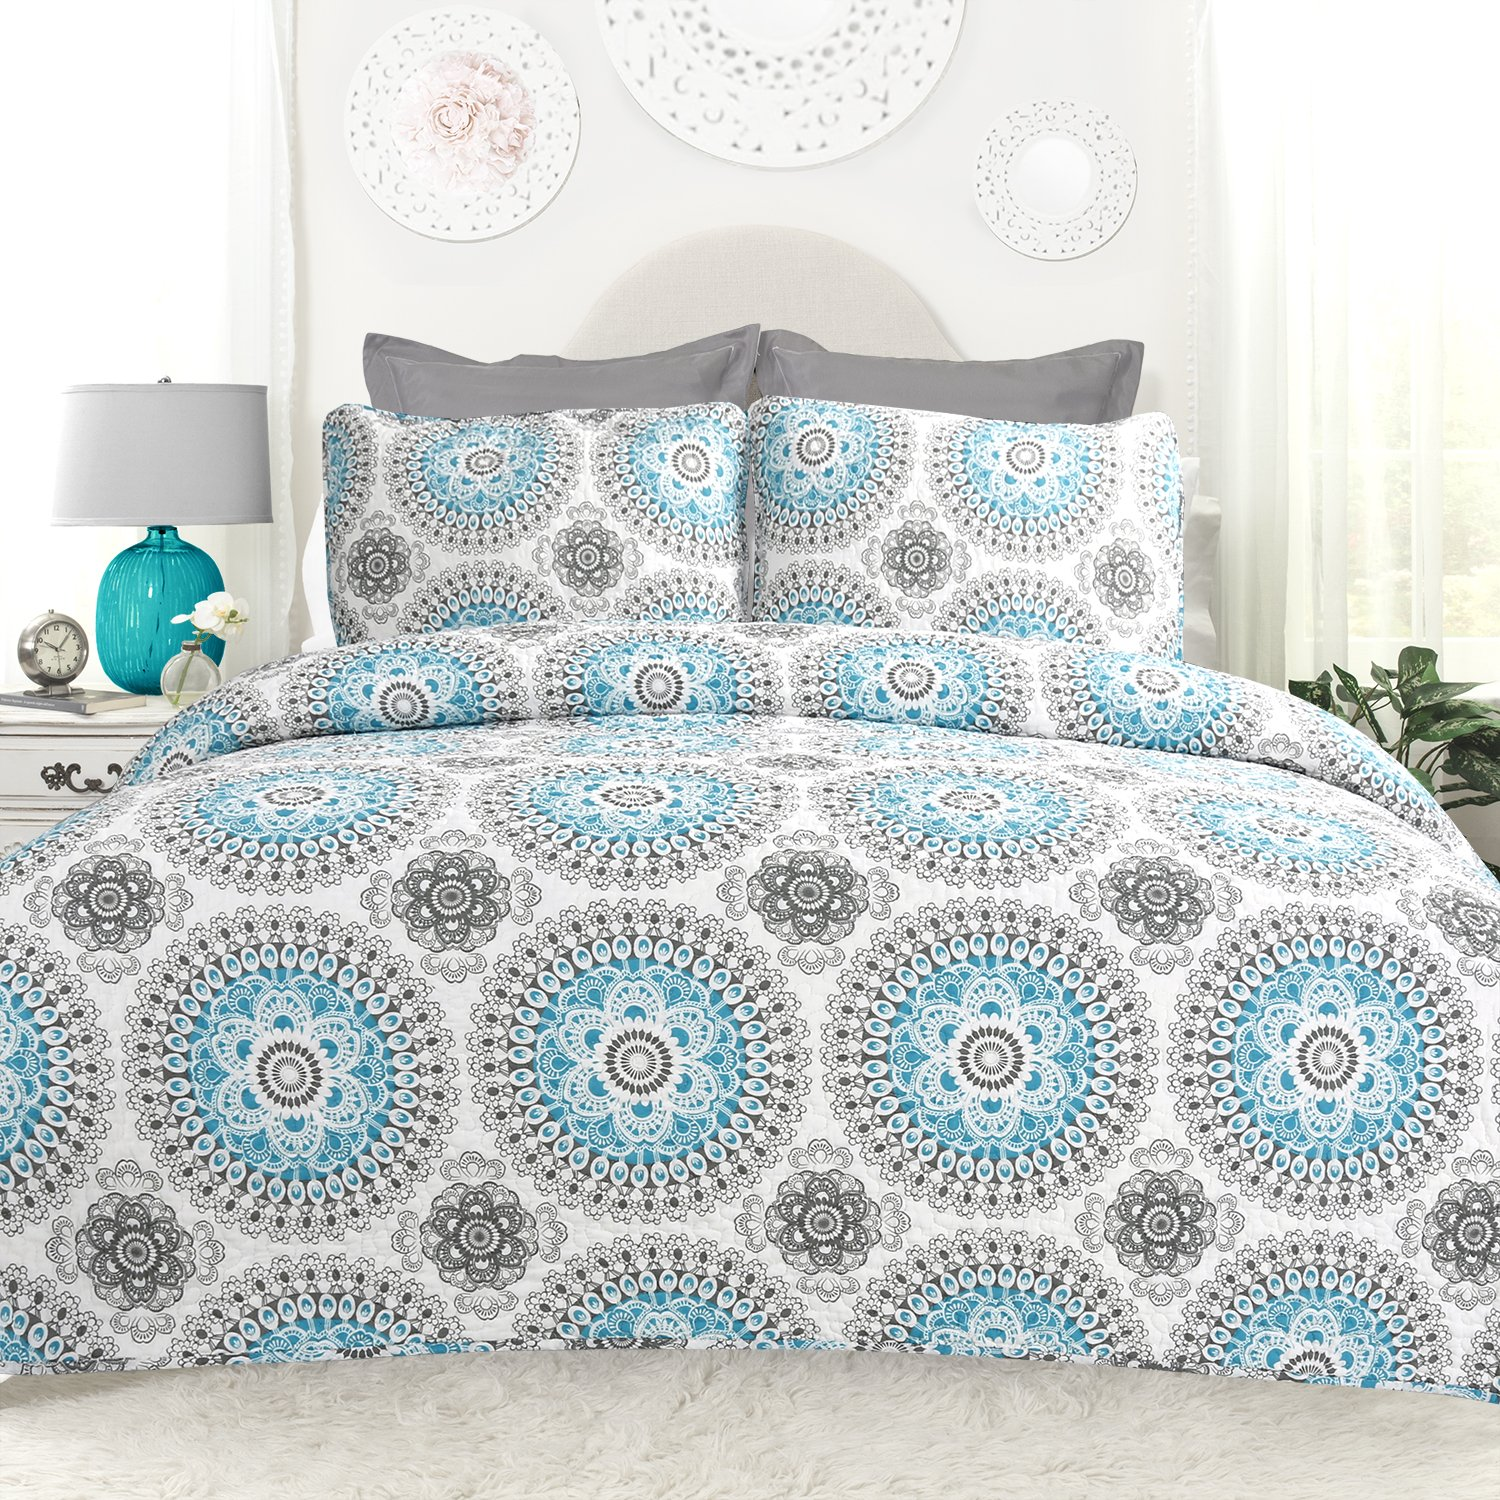 DriftAway 3 Piece Bella Reversible Quilt Set Bedspreads Coverlets Repeated Medallion Floral Pattern Cotton Cover Prewashed Aqua Gray Full Queen